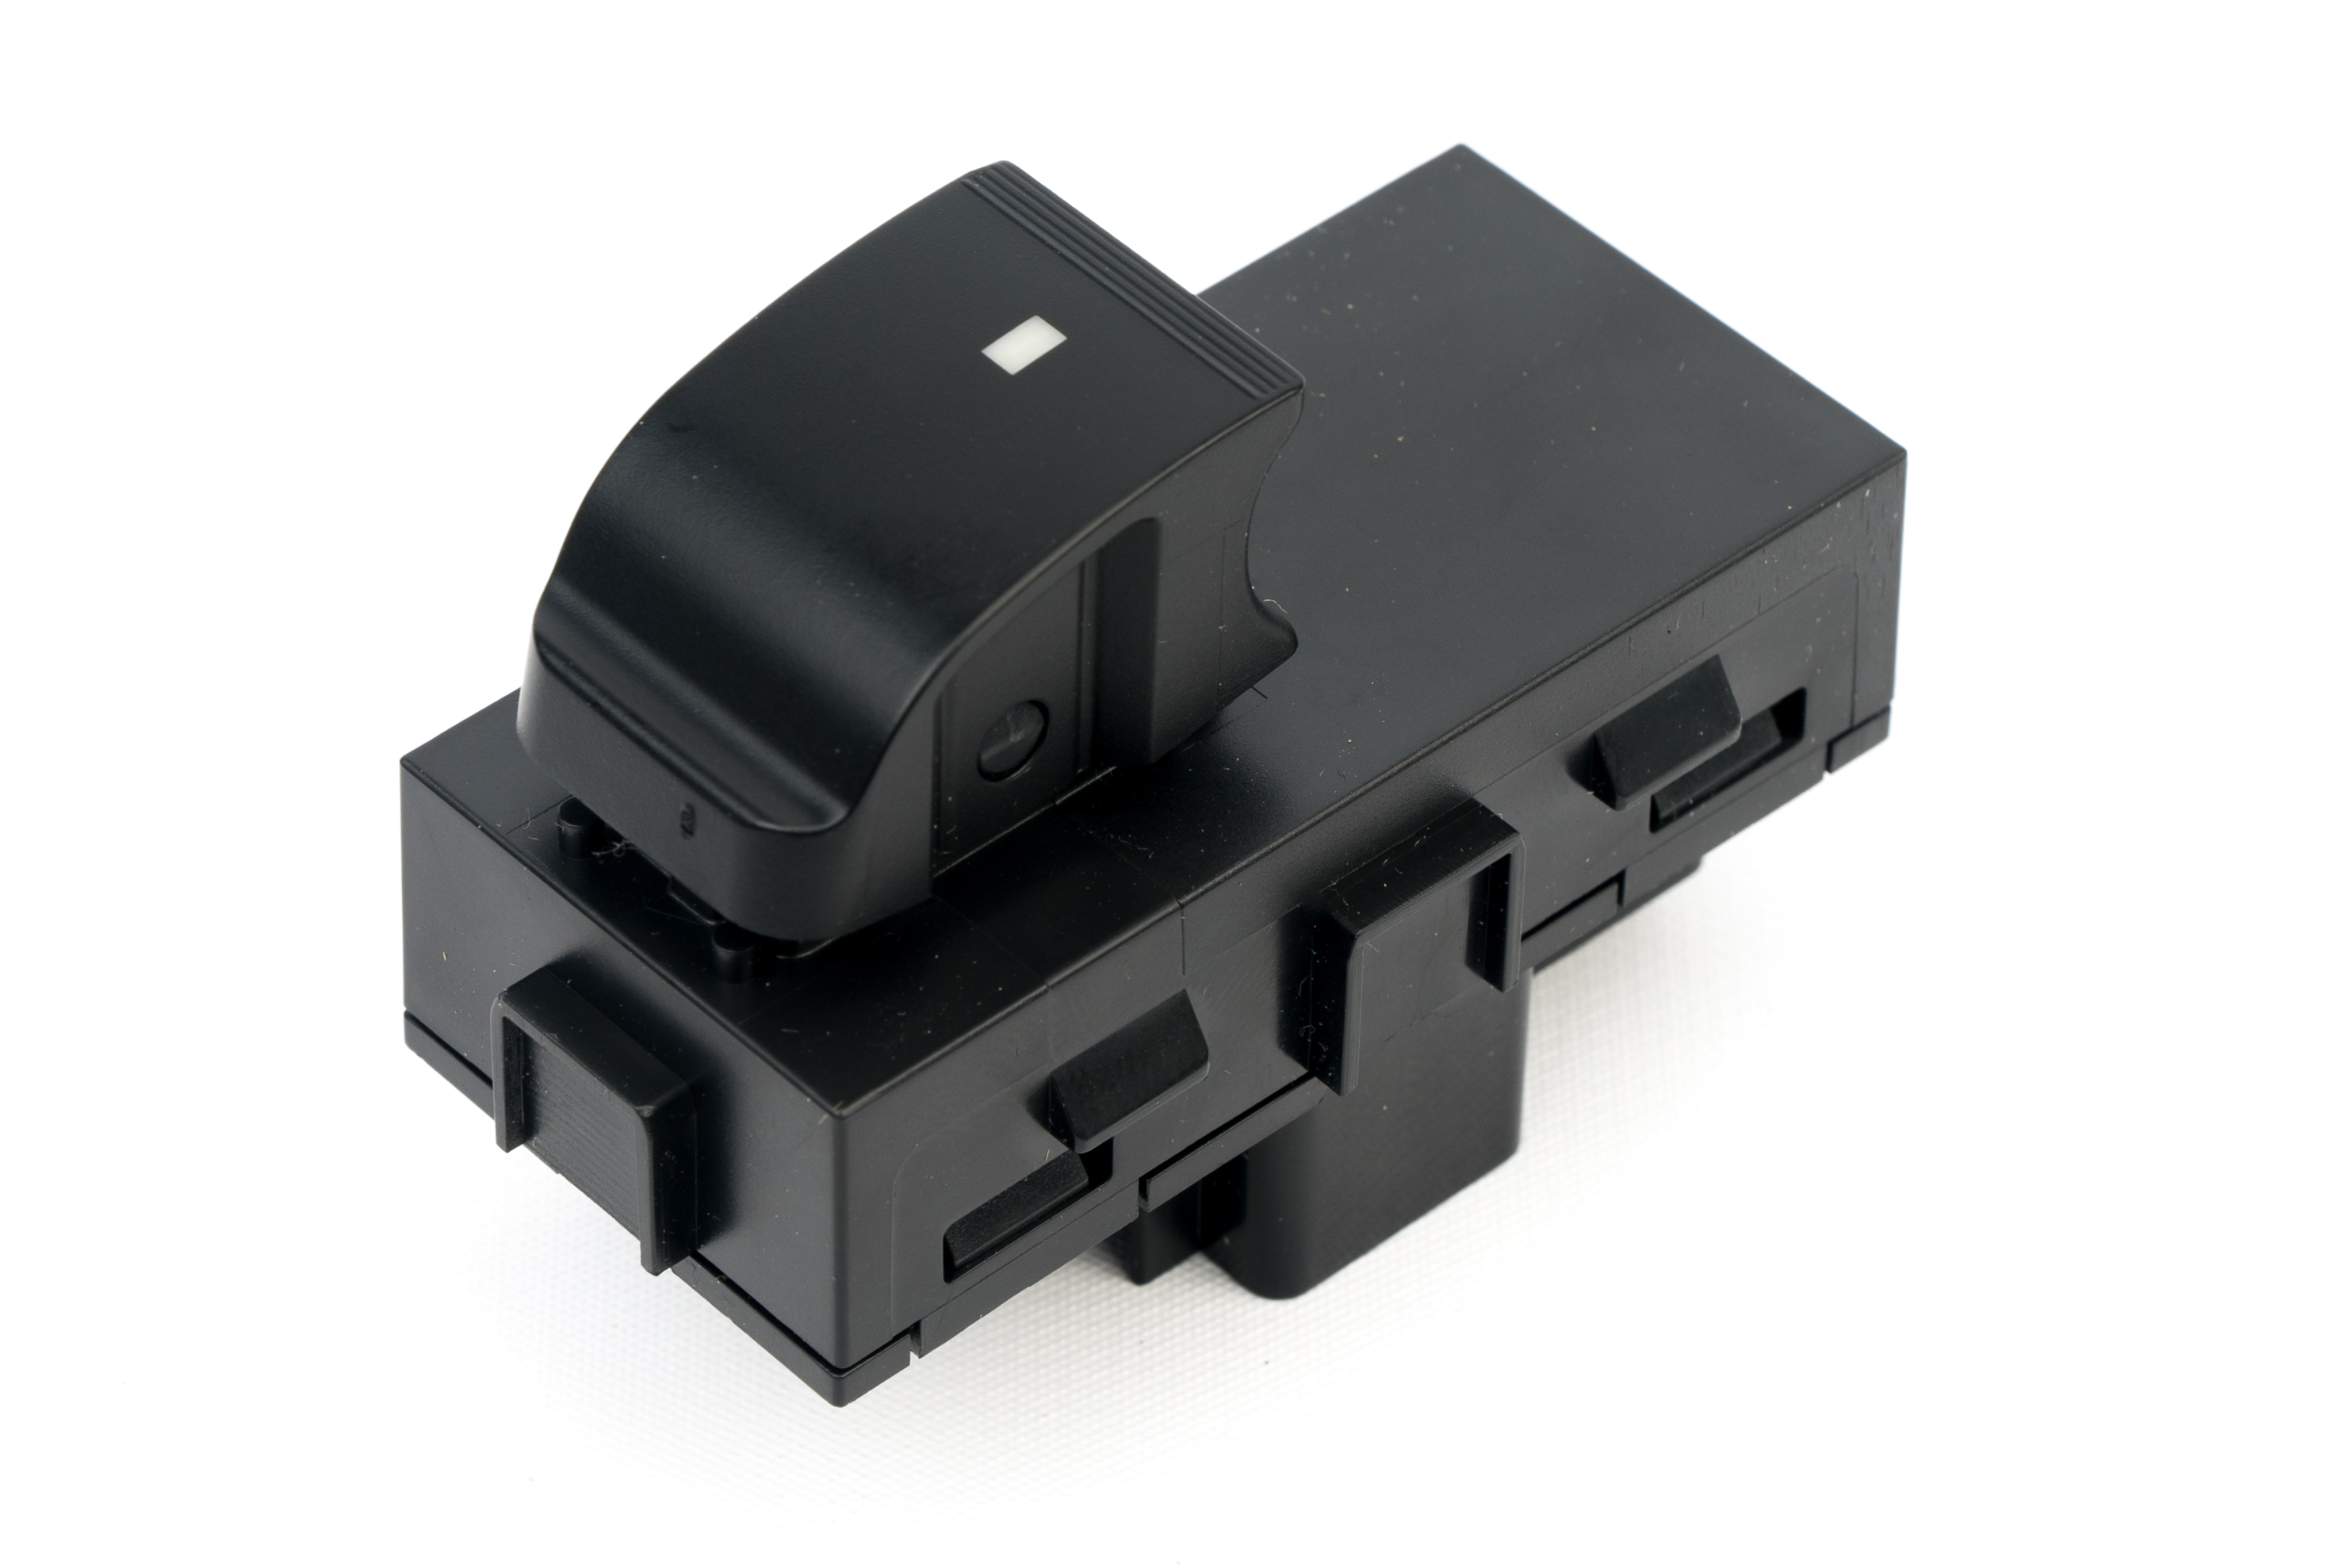 Power Window Switch - Passenger Front Right, Rear Left or Right - Replaces# 22895545 Image